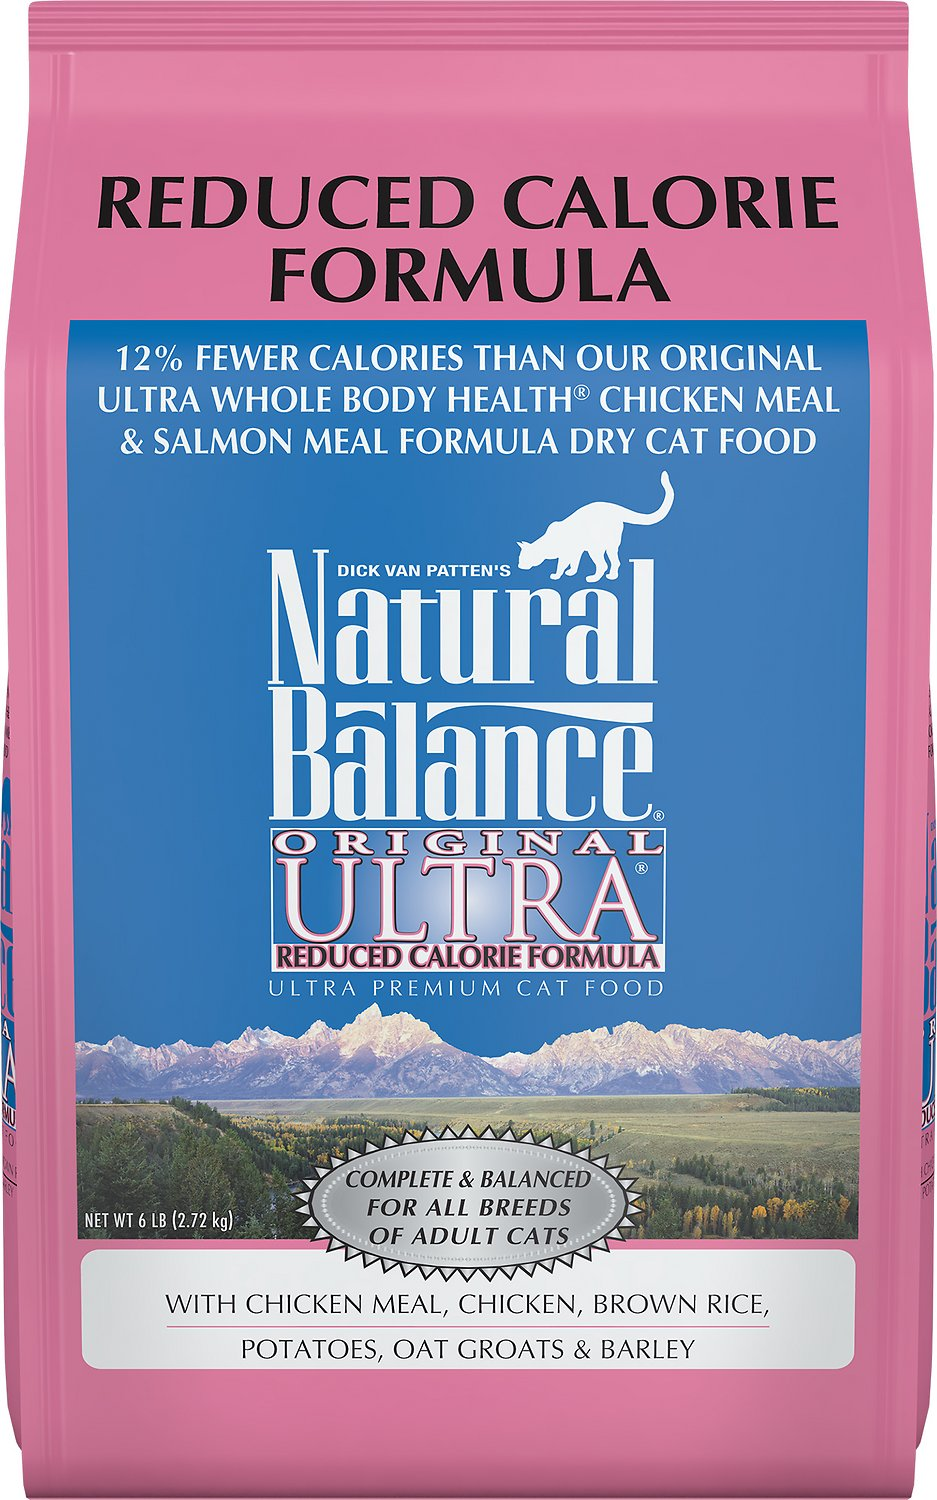 Natural Balance Original Ultra Reduced Calorie Formula Dry Cat Food, 6-lb bag - Chewy.com